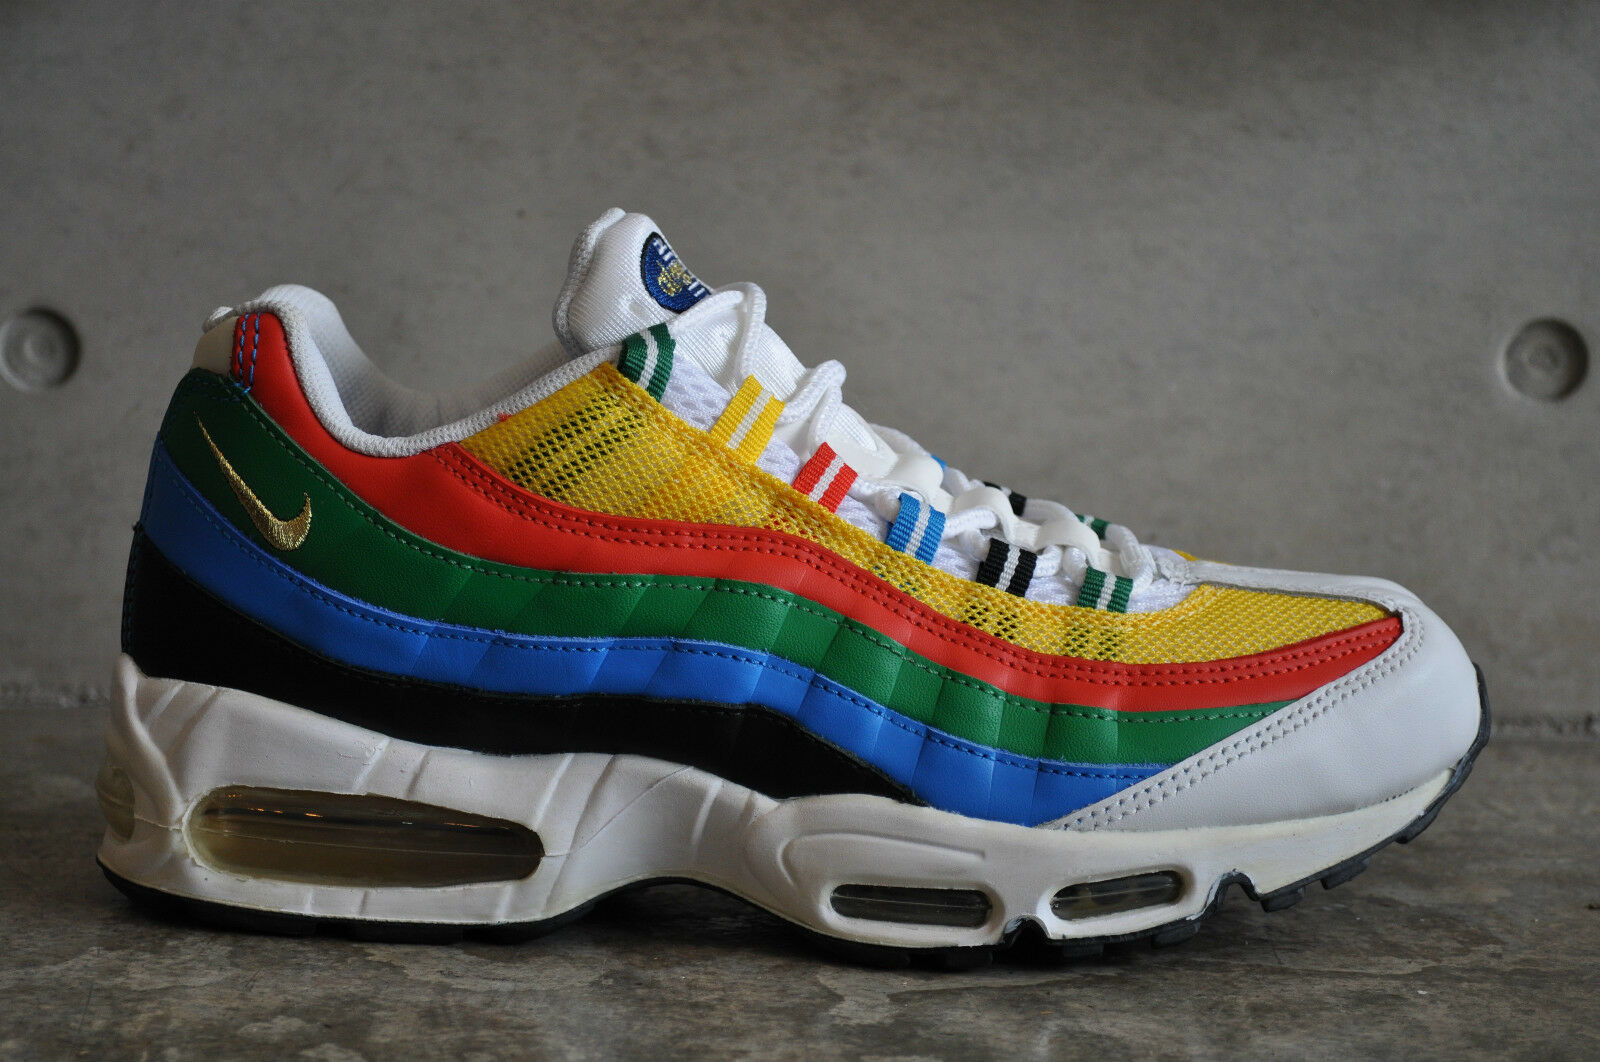 Nike Air Max 95  Olympic  2004 - Wht Met gold-Chle Rd-Photo blue